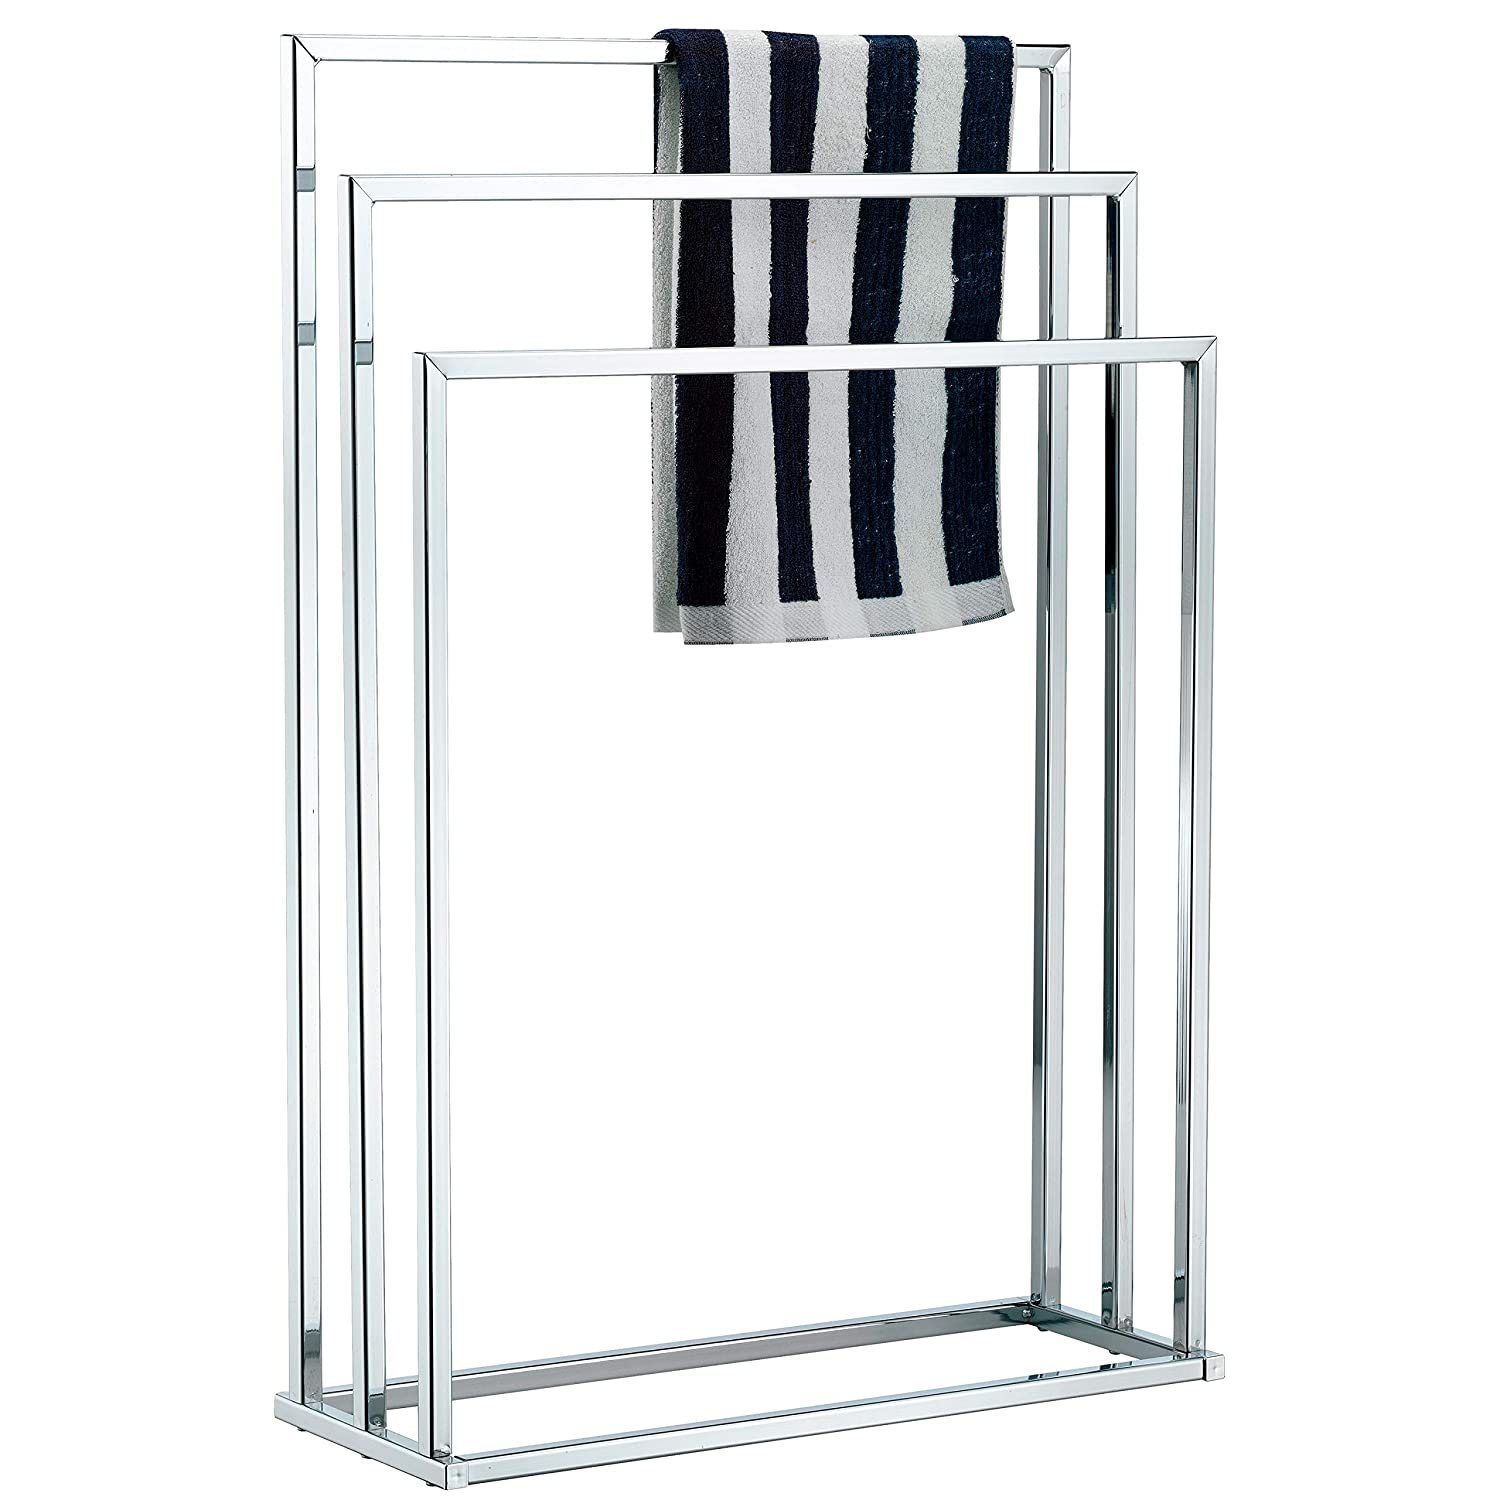 MyGift Freestanding Towel Rack, 3 Tier Metal Towel Bar Stand, Silver-Tone Chrome Plated